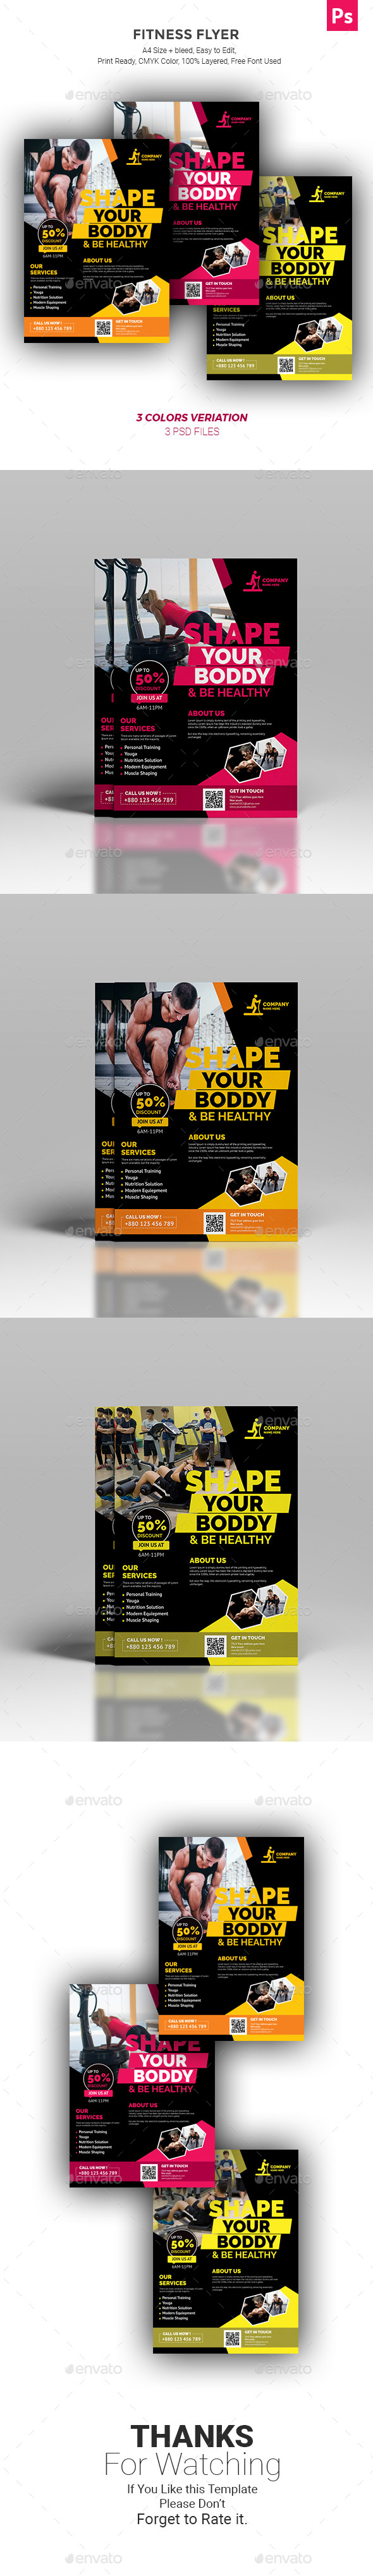 Fitness/Zym Flyer - Corporate Flyers